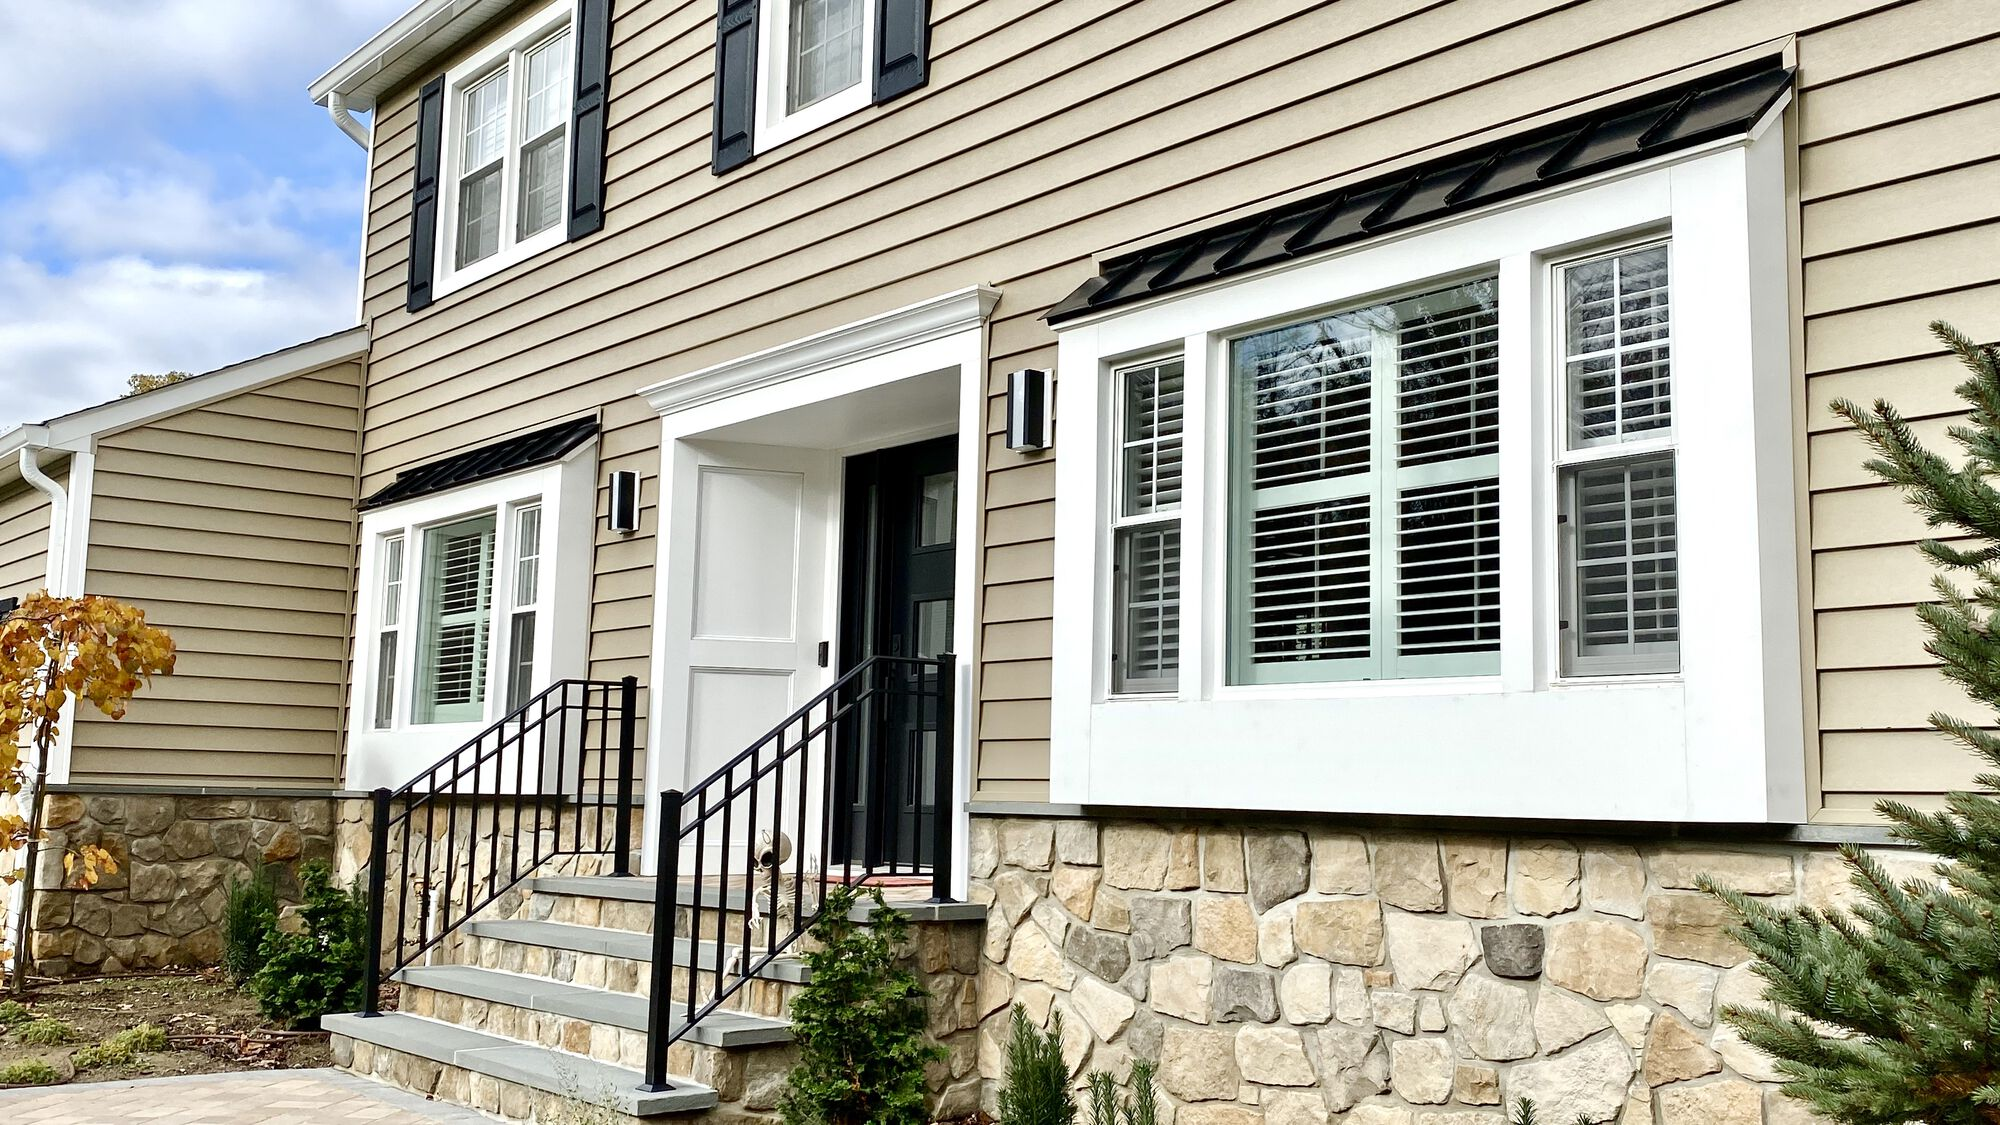 Prodigy Solid Backed Insulated Clapboard Siding, Azek Door Trim, Boral Cultured Stone, Metal Roofing, Thermopane Mezzo Windows in Randolph, Morris County NJ